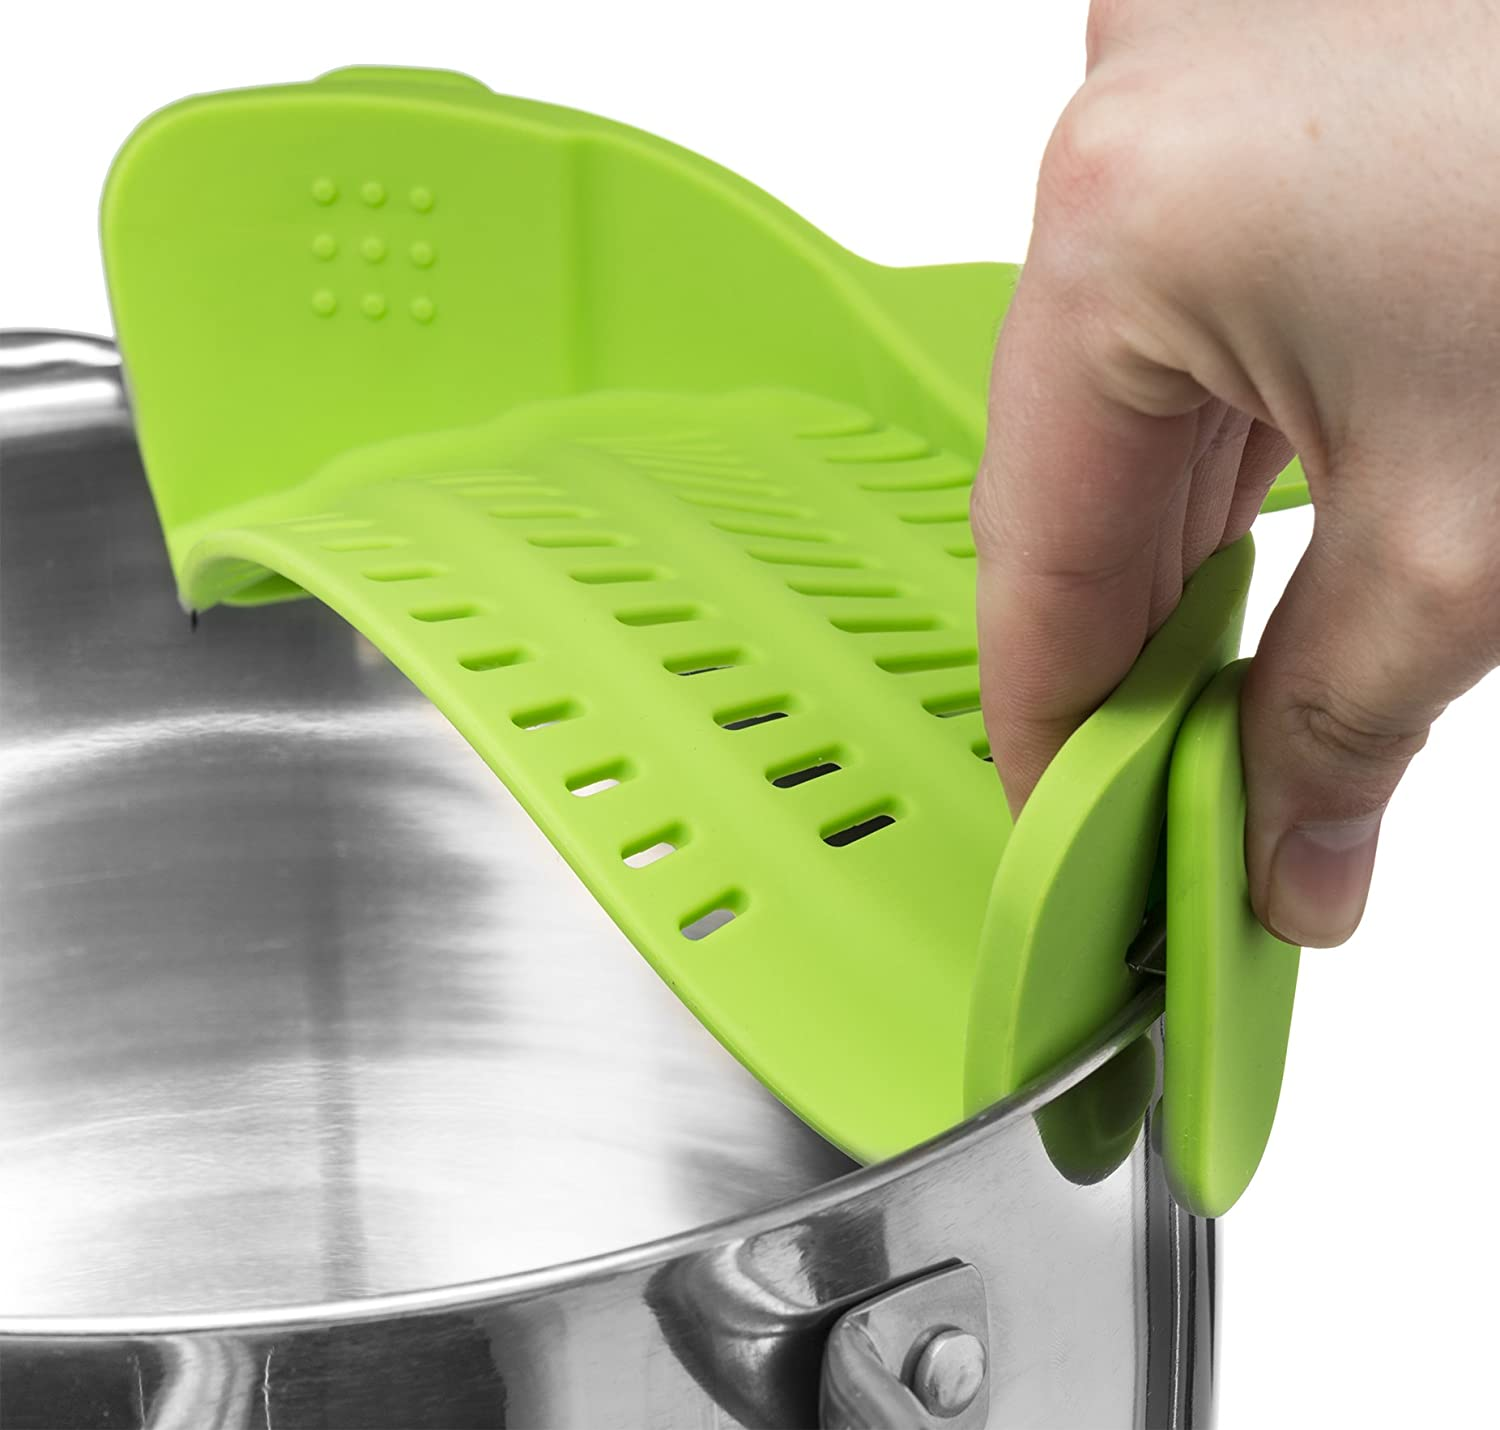 Snap N Strain Strainer Clip On Silicone Colander Fits All